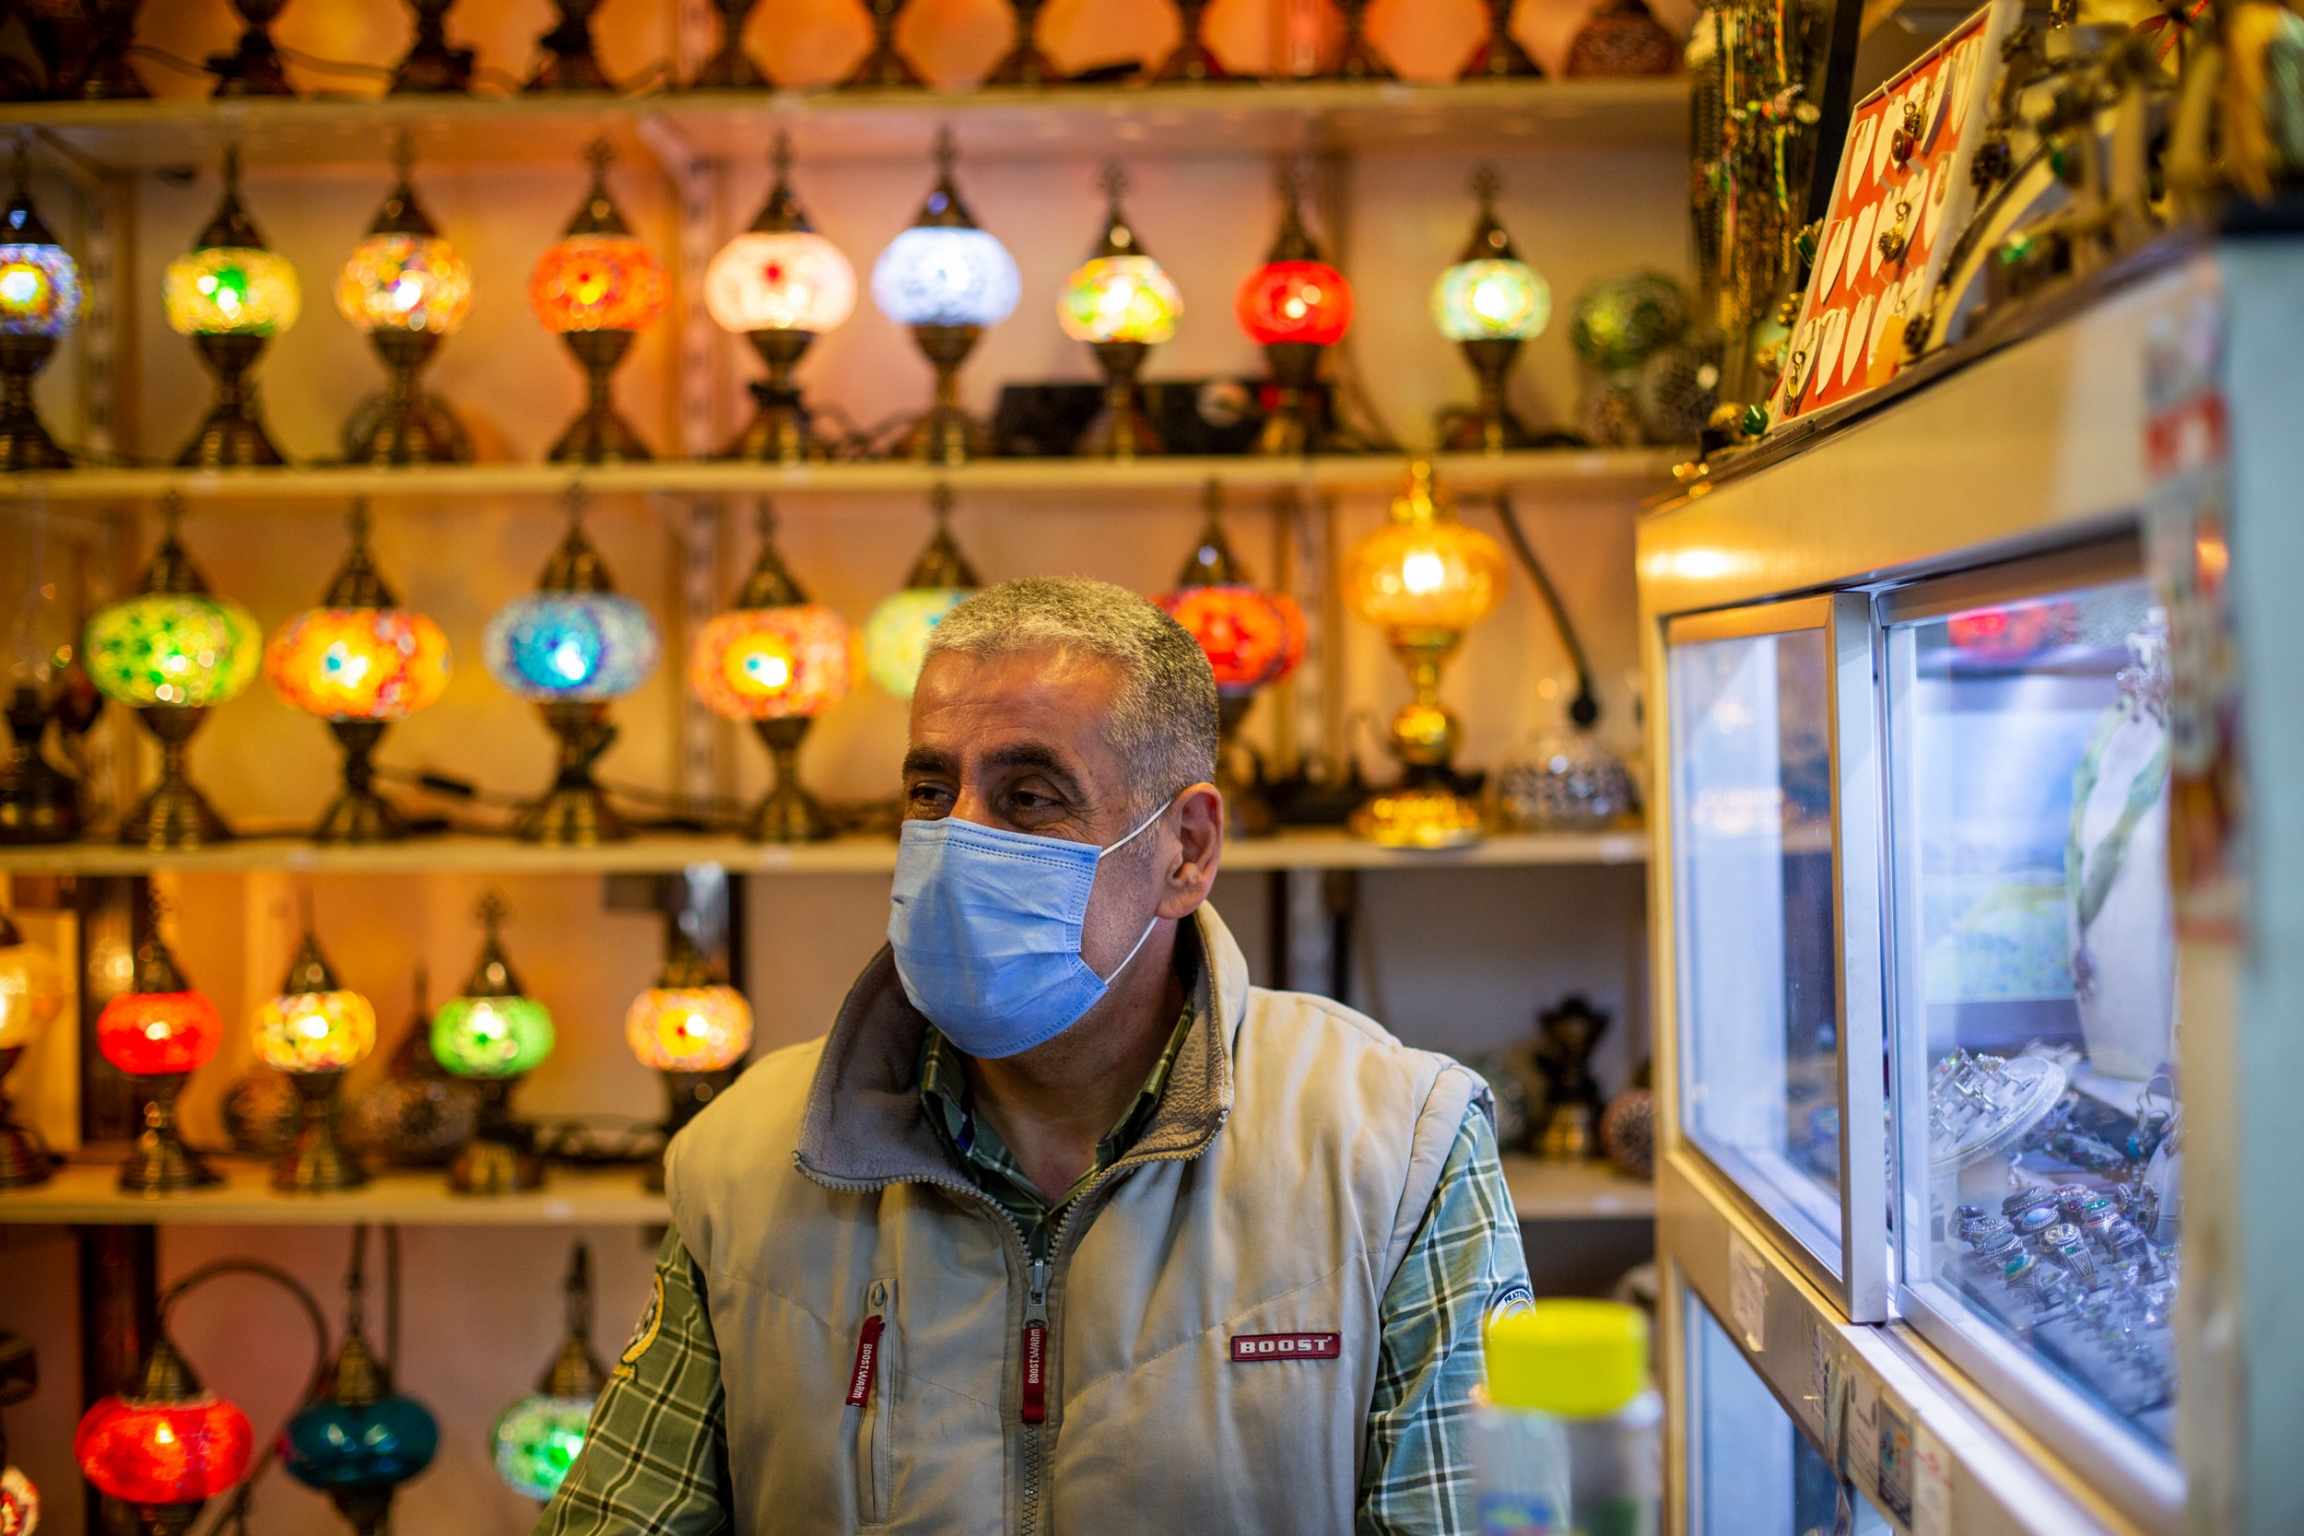 A man is shown with a face mask and standing in front of a wall of brightly colored lamps.